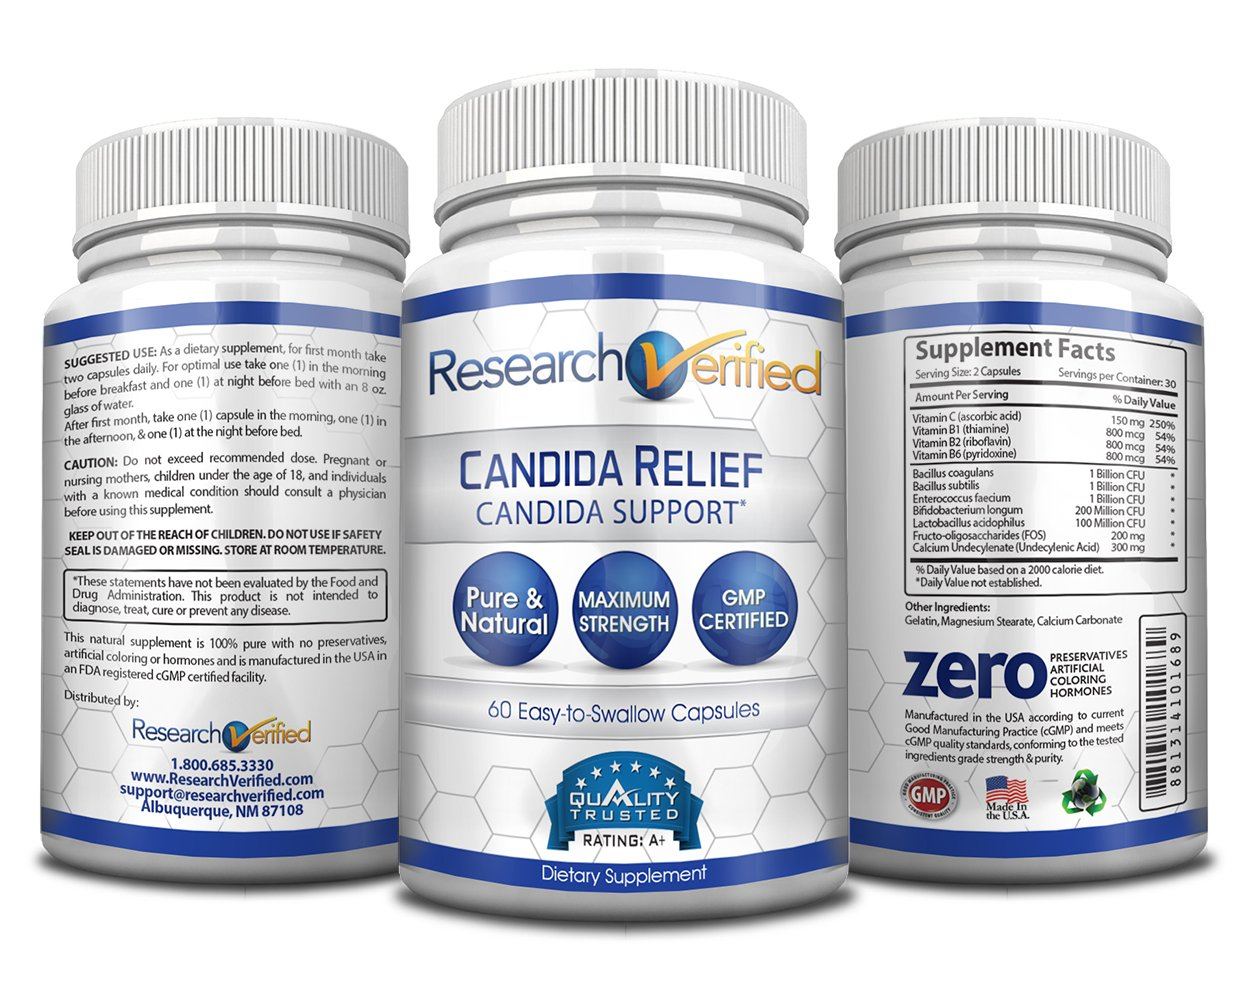 Research Verified Candida Relief - #1 Yeast Infection & Candida Supplement - 100% Natural - w/ 5 strains of probiotic healthy bacteria and Vitamin B & C - 100% Money Back - 6 Bottles (6 Months Supply) by Research Verified (Image #2)